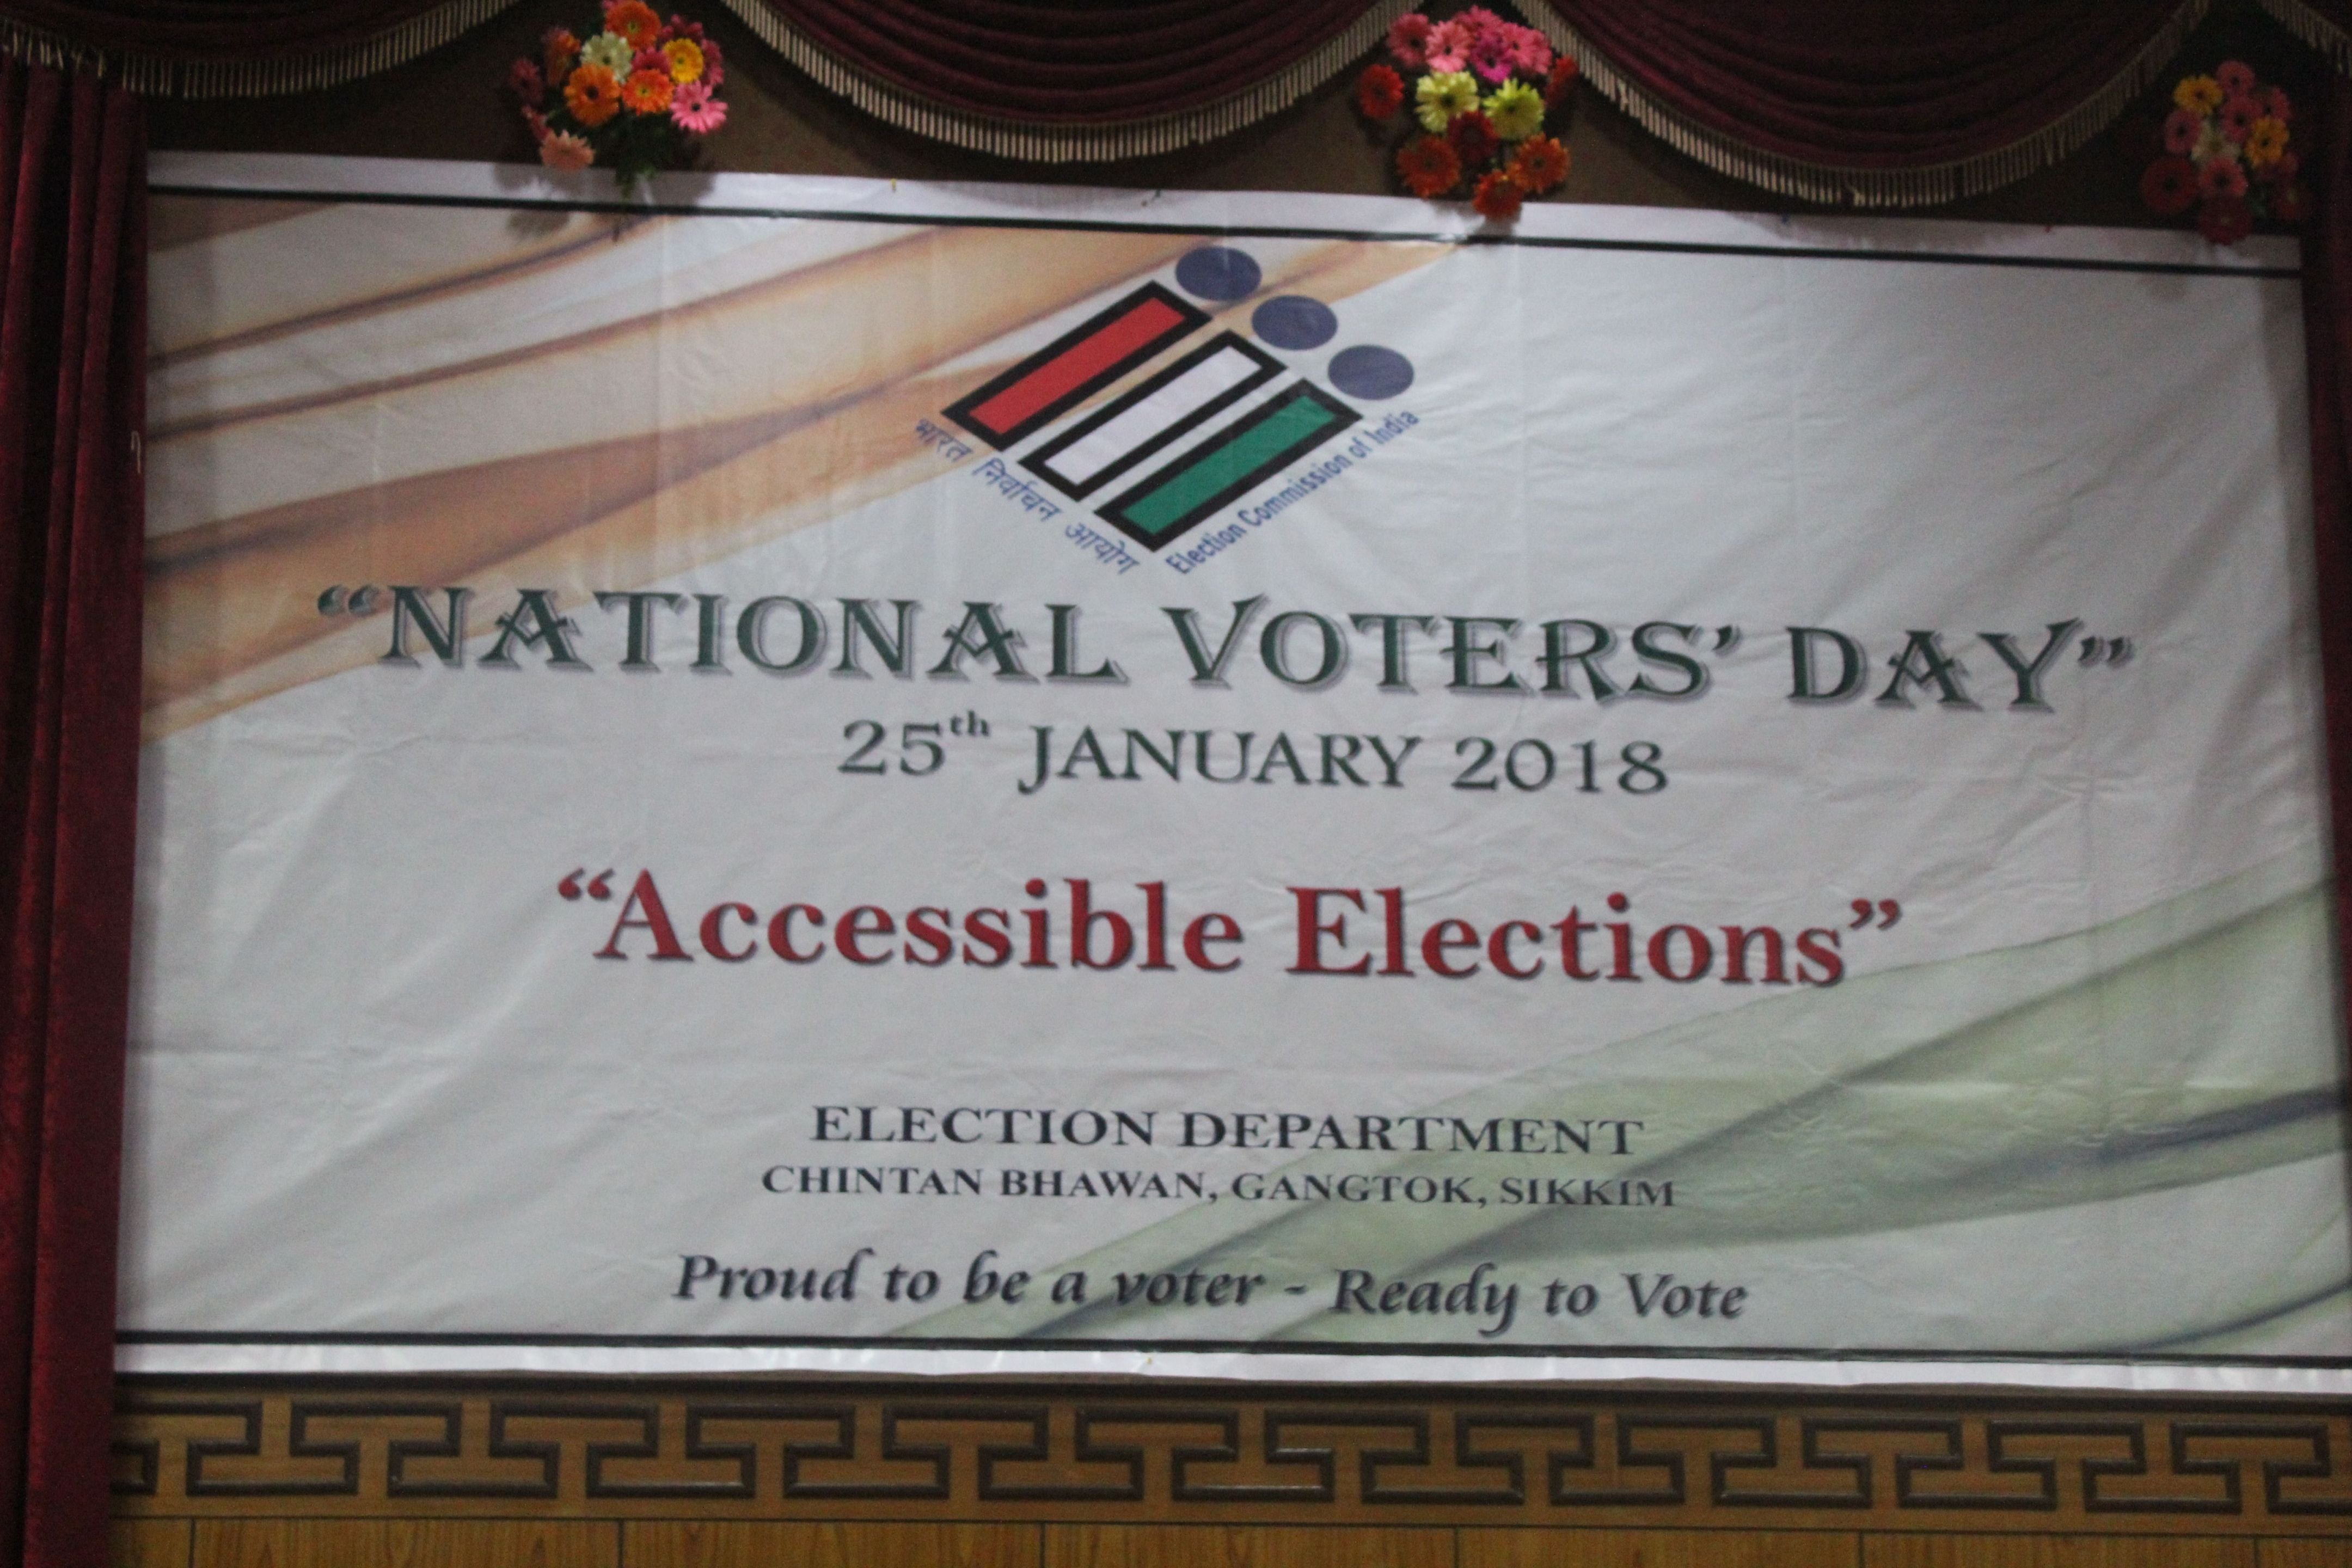 NATIONAL VOTER'S DAY 2018